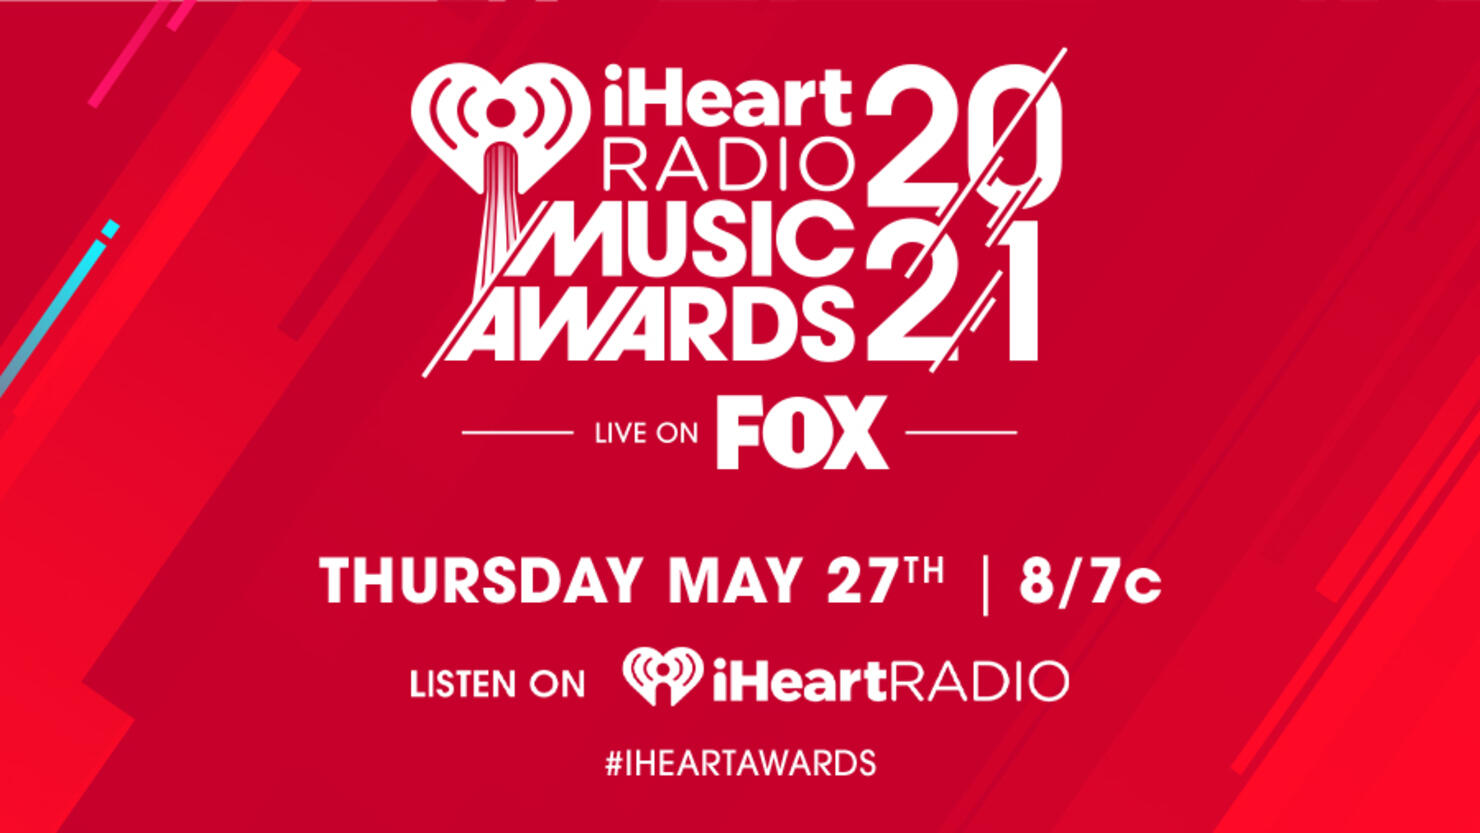 iHeartRadio Music Awards